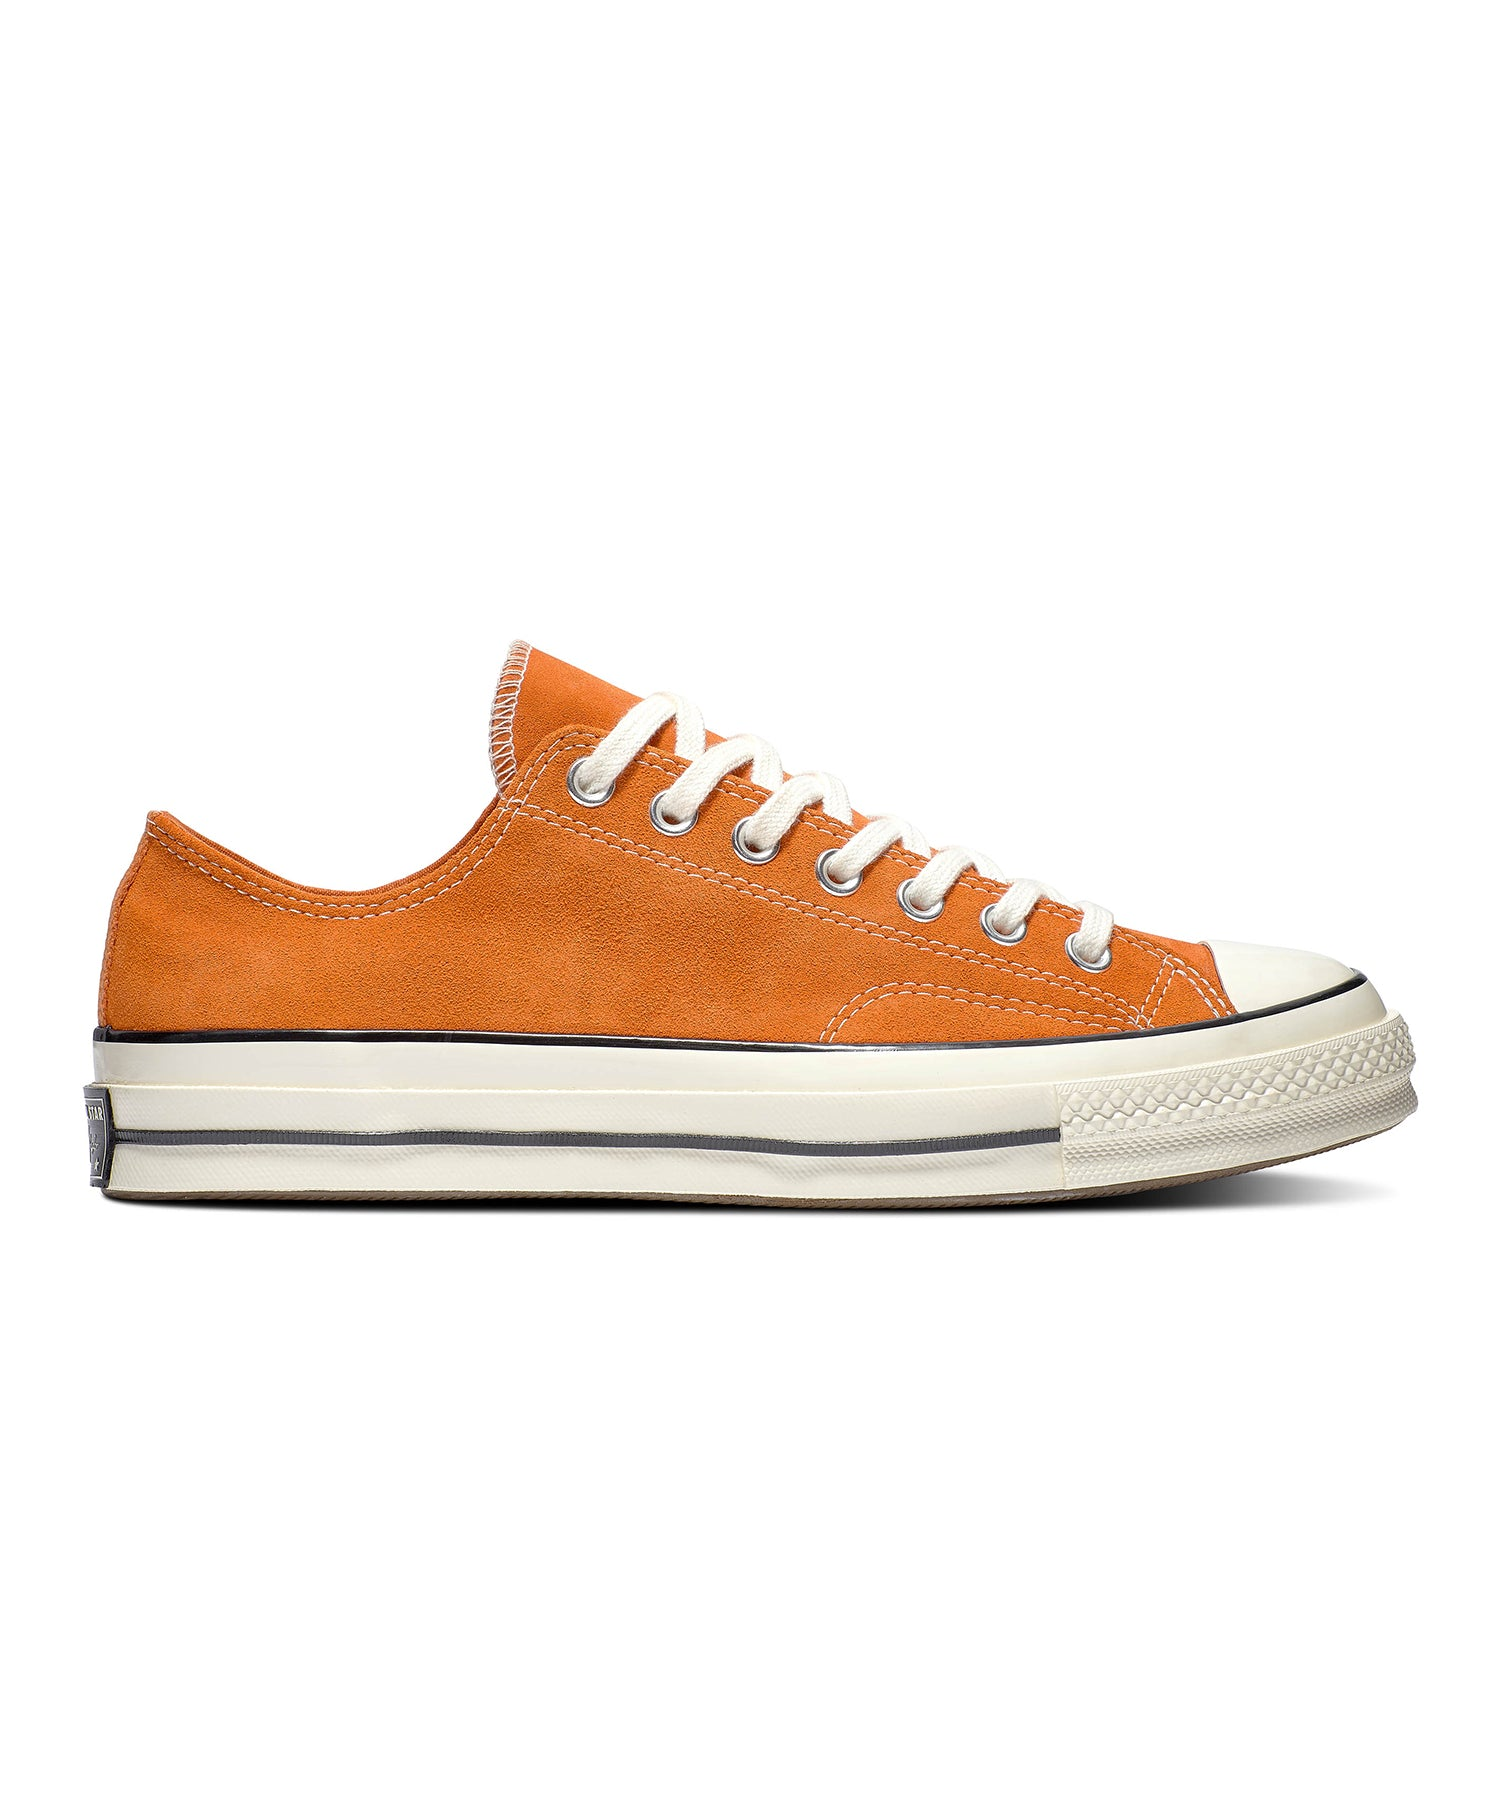 Converse Suede Chuck 70 Ox in Campfire Orange